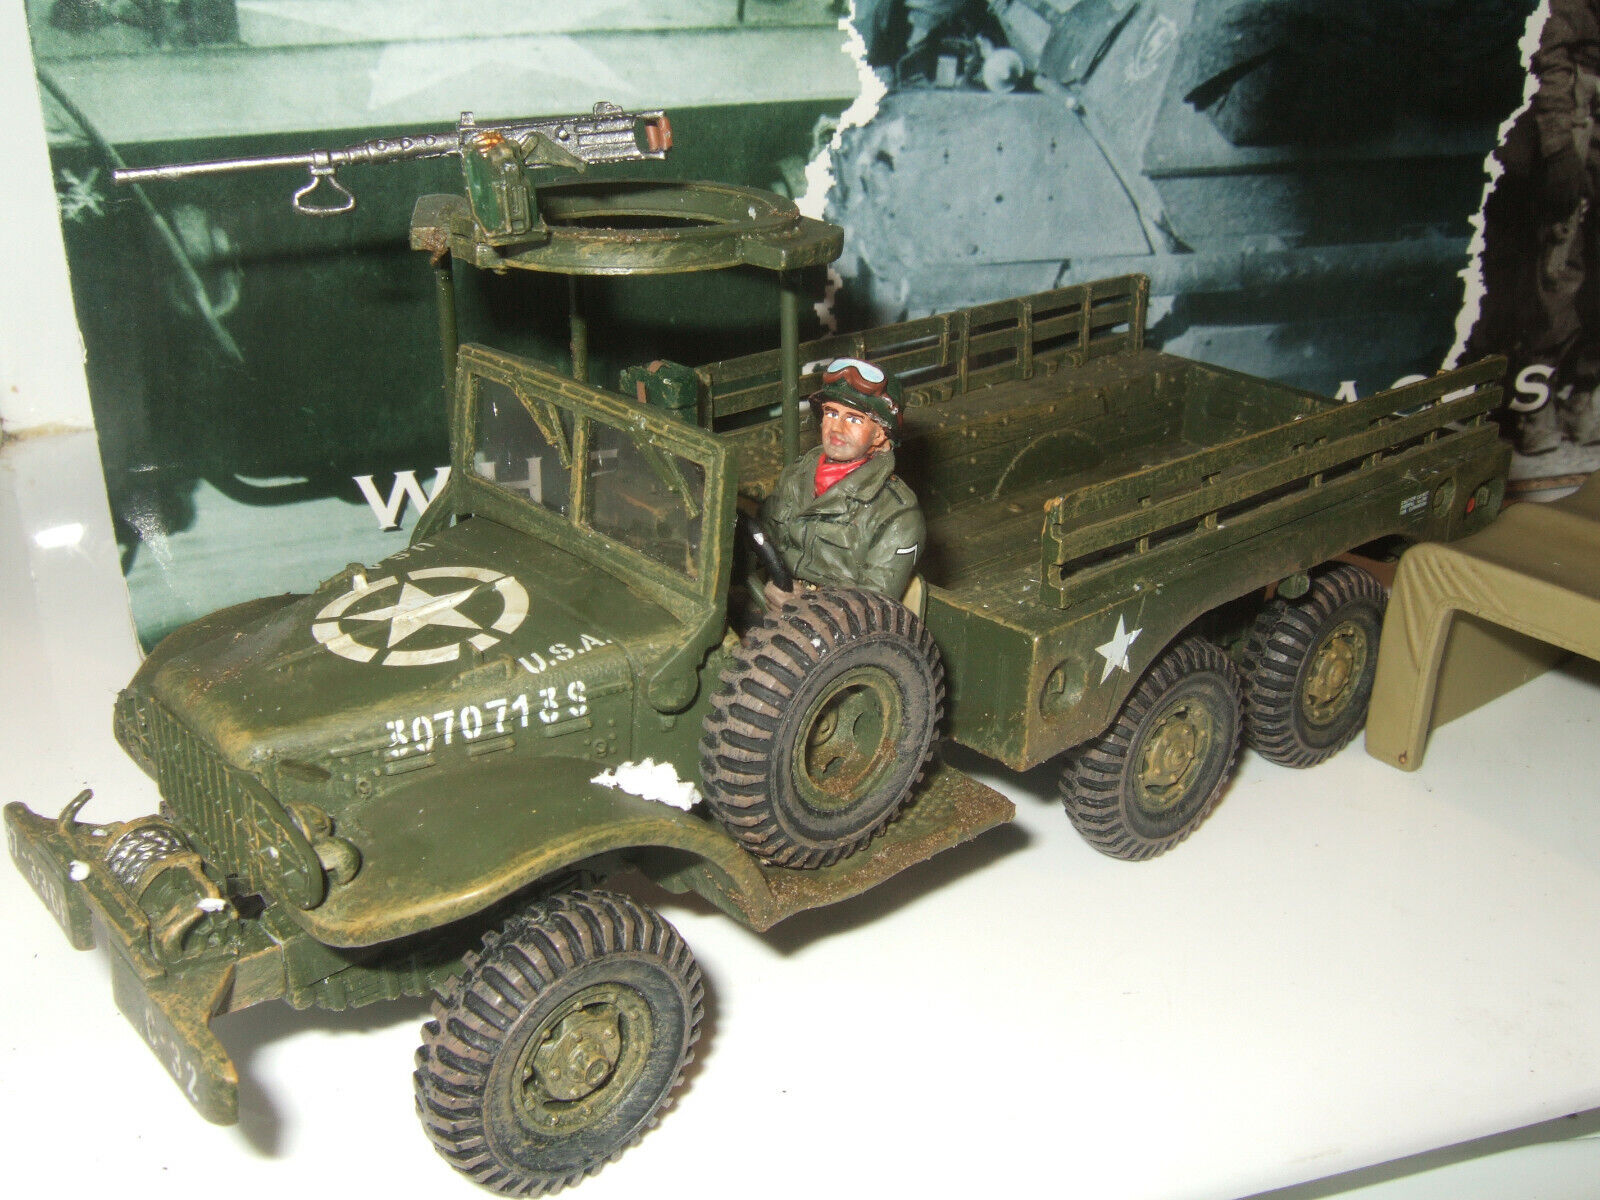 Rare King & Country BBA 38 Battle of of the Bulge US Dodge 1 1 2 Ton Truck in 1 30